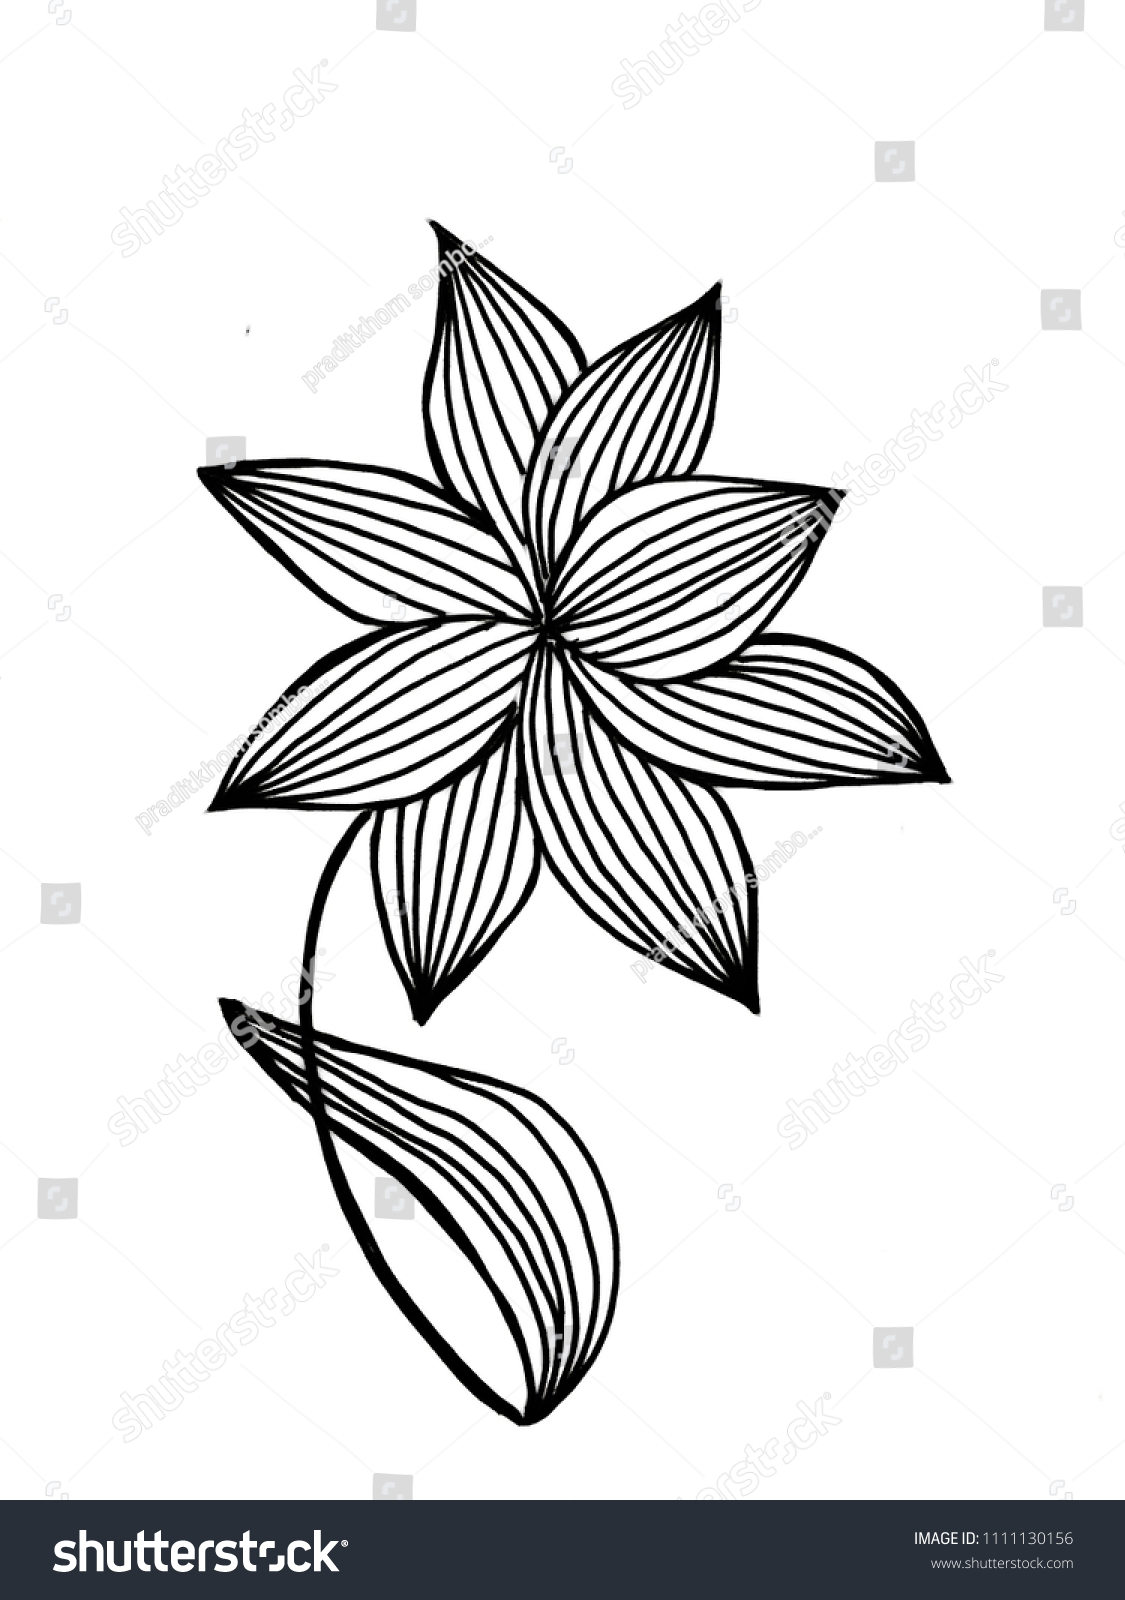 Lotus flower illustration on over white stock illustration lotus flower illustration on over white backgroundhand painting and drawdecorative series with izmirmasajfo